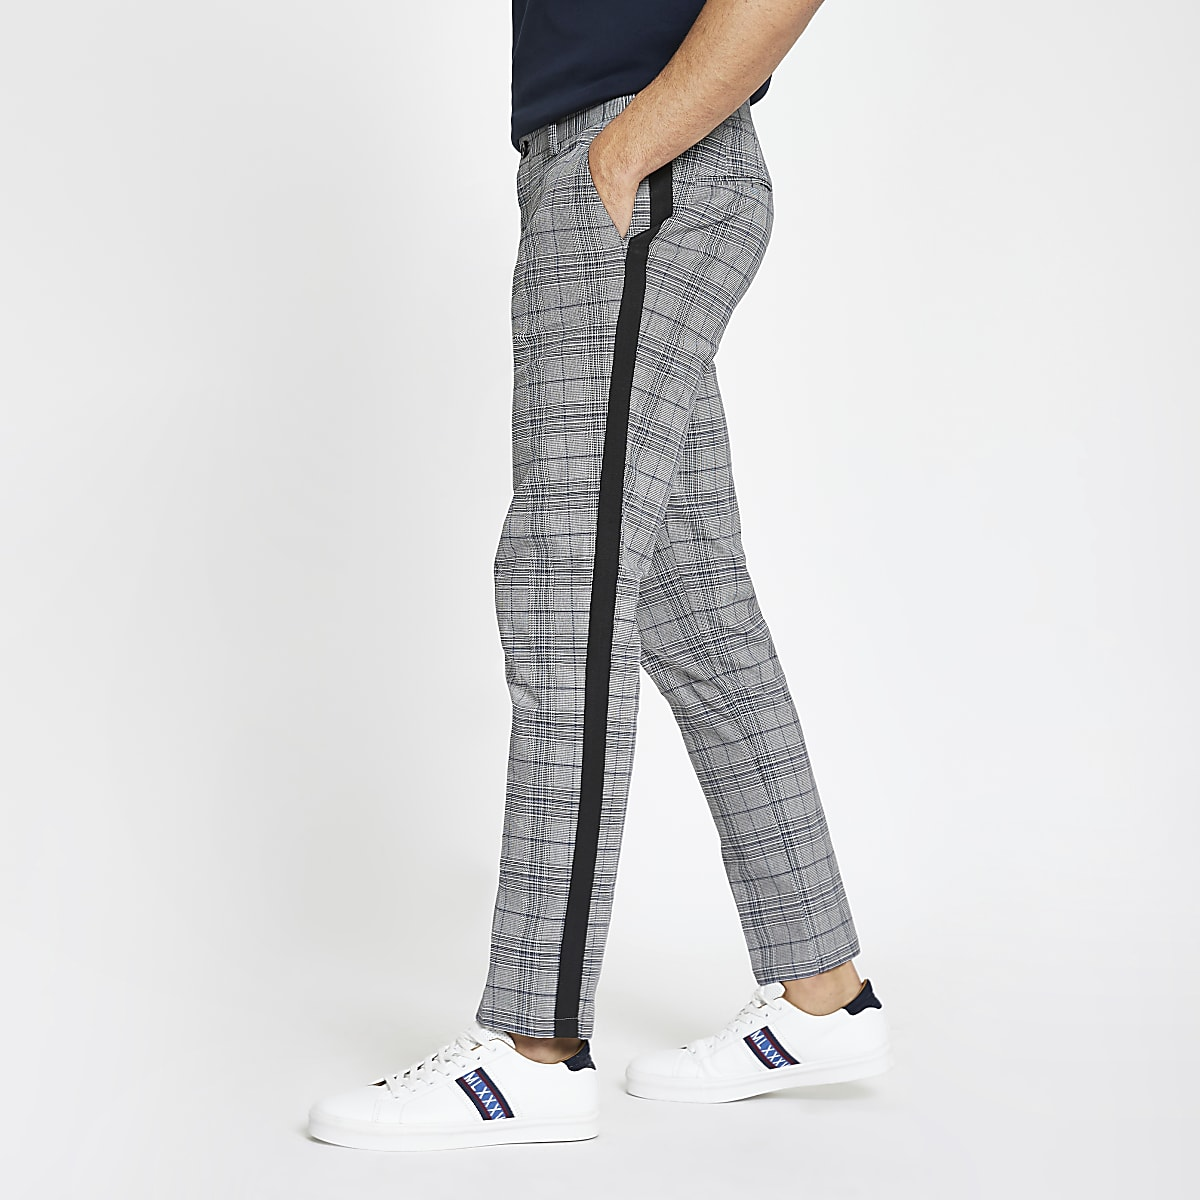 979d2ae009a Grey check tape skinny chino trousers - Chinos - Trousers - men